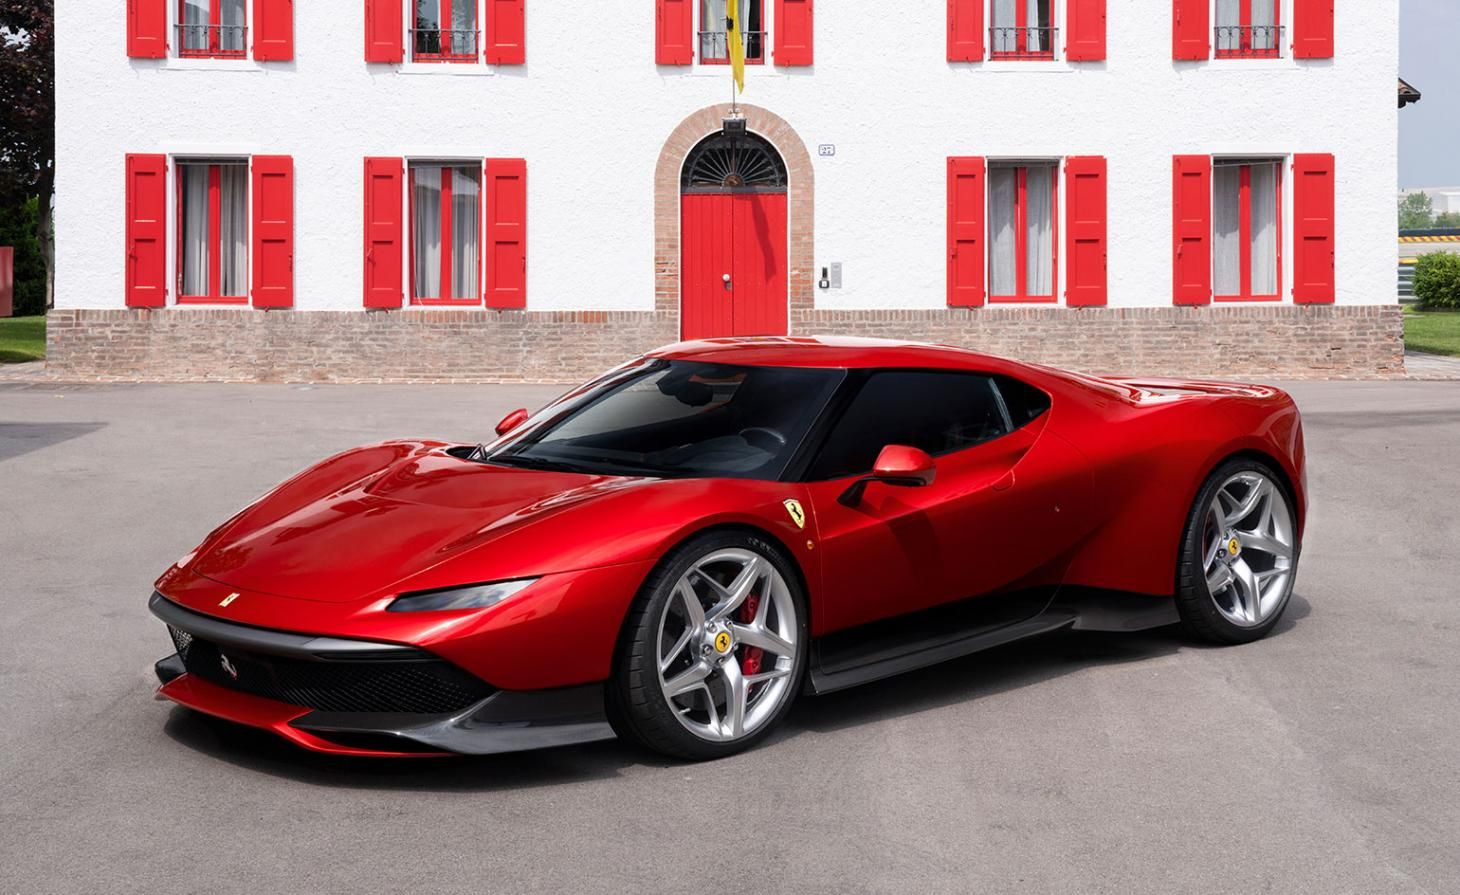 Ferrari Unveils A Surprise One Off Supercar Which Nostalgically Nods To 70s And 90s Car Design New Ferrari Sports Car Super Cars